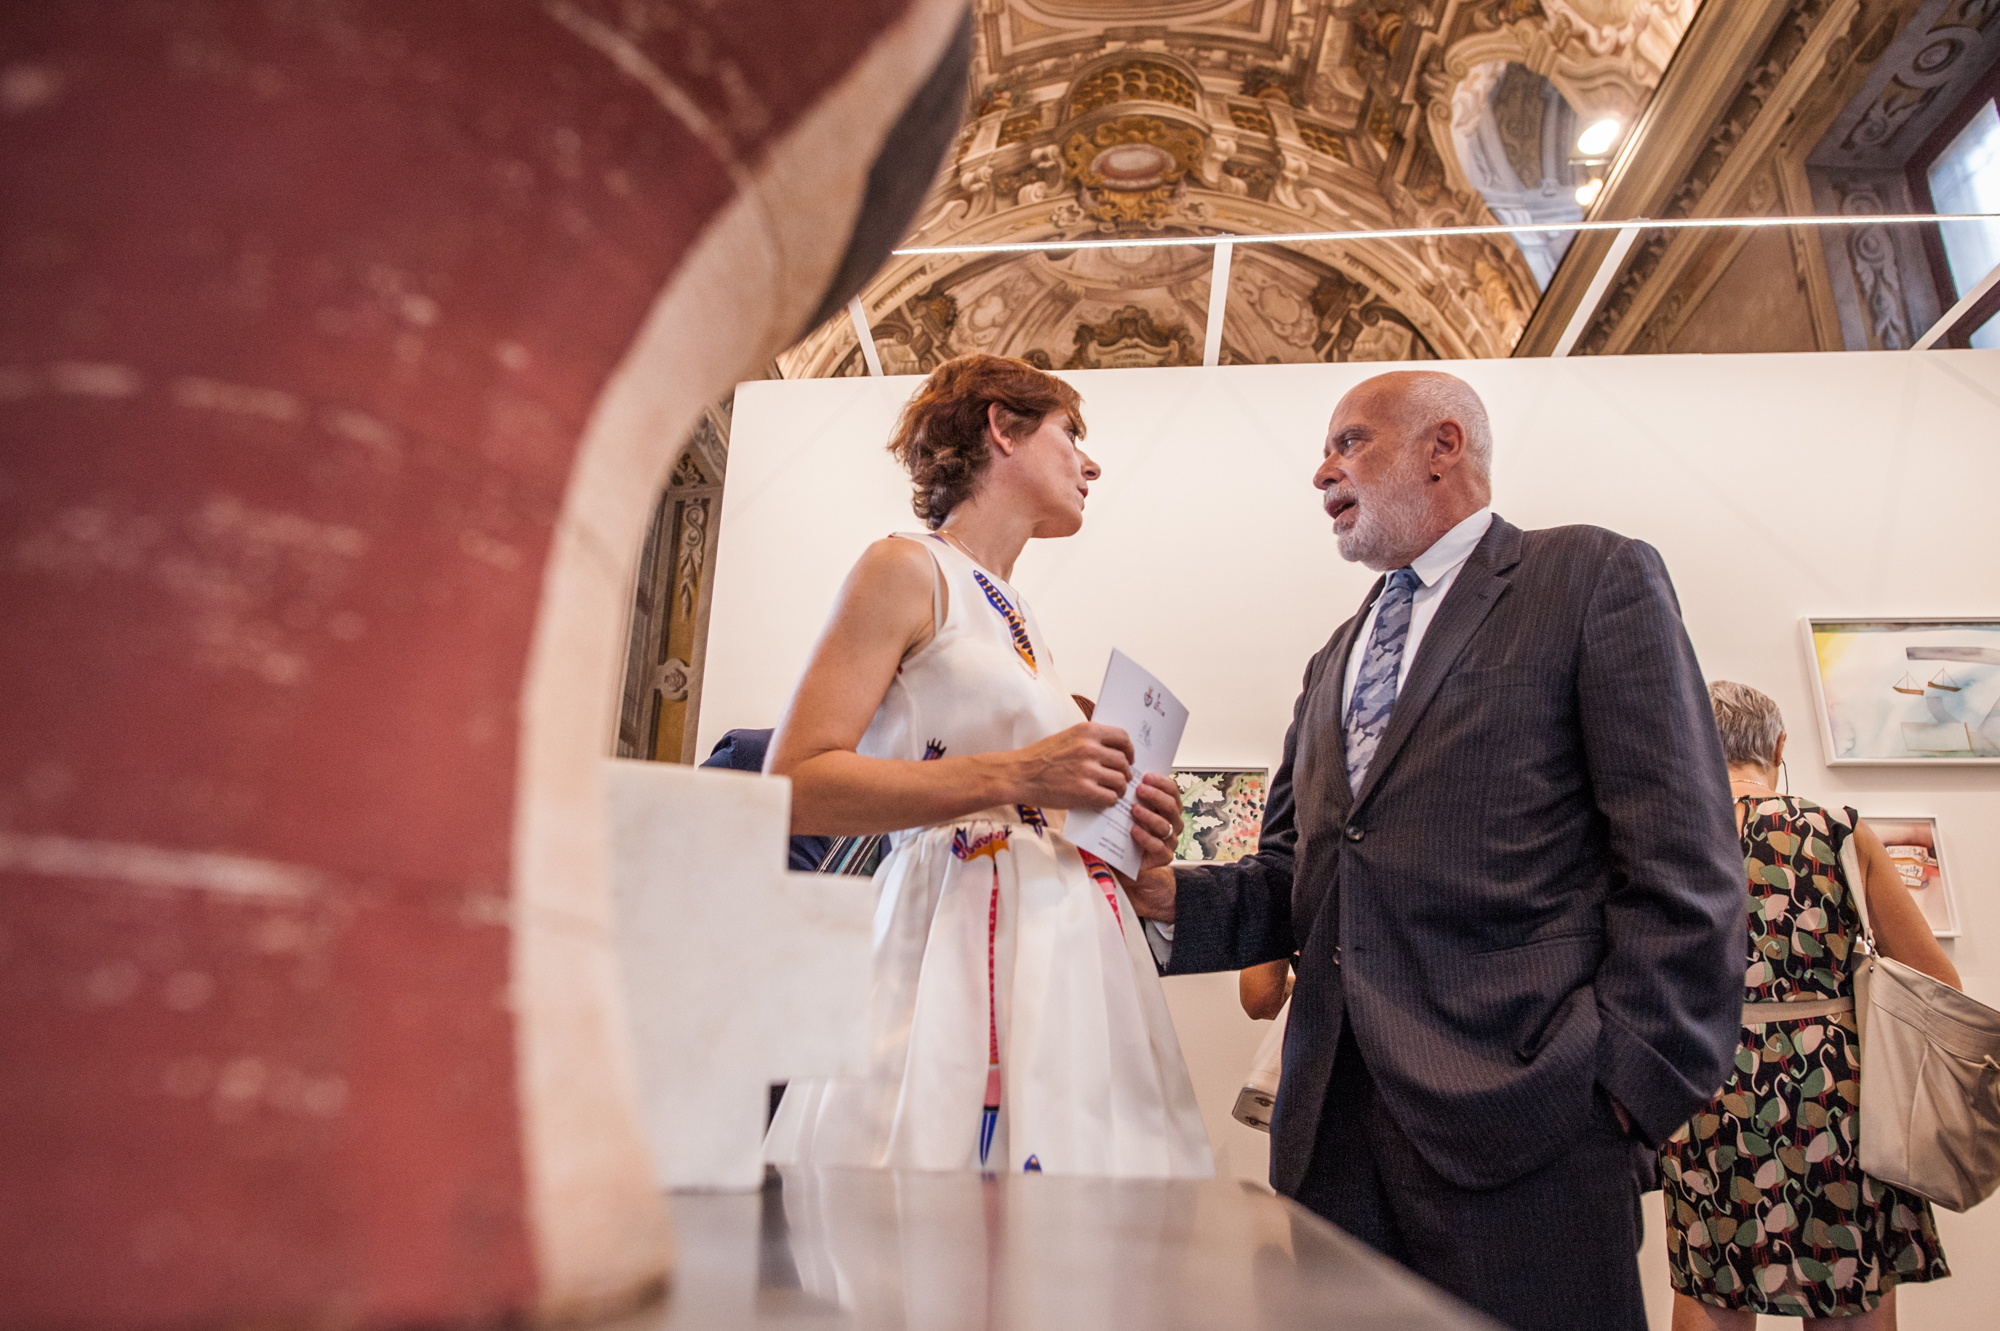 Roberta Ceretto con Francesco Clemente